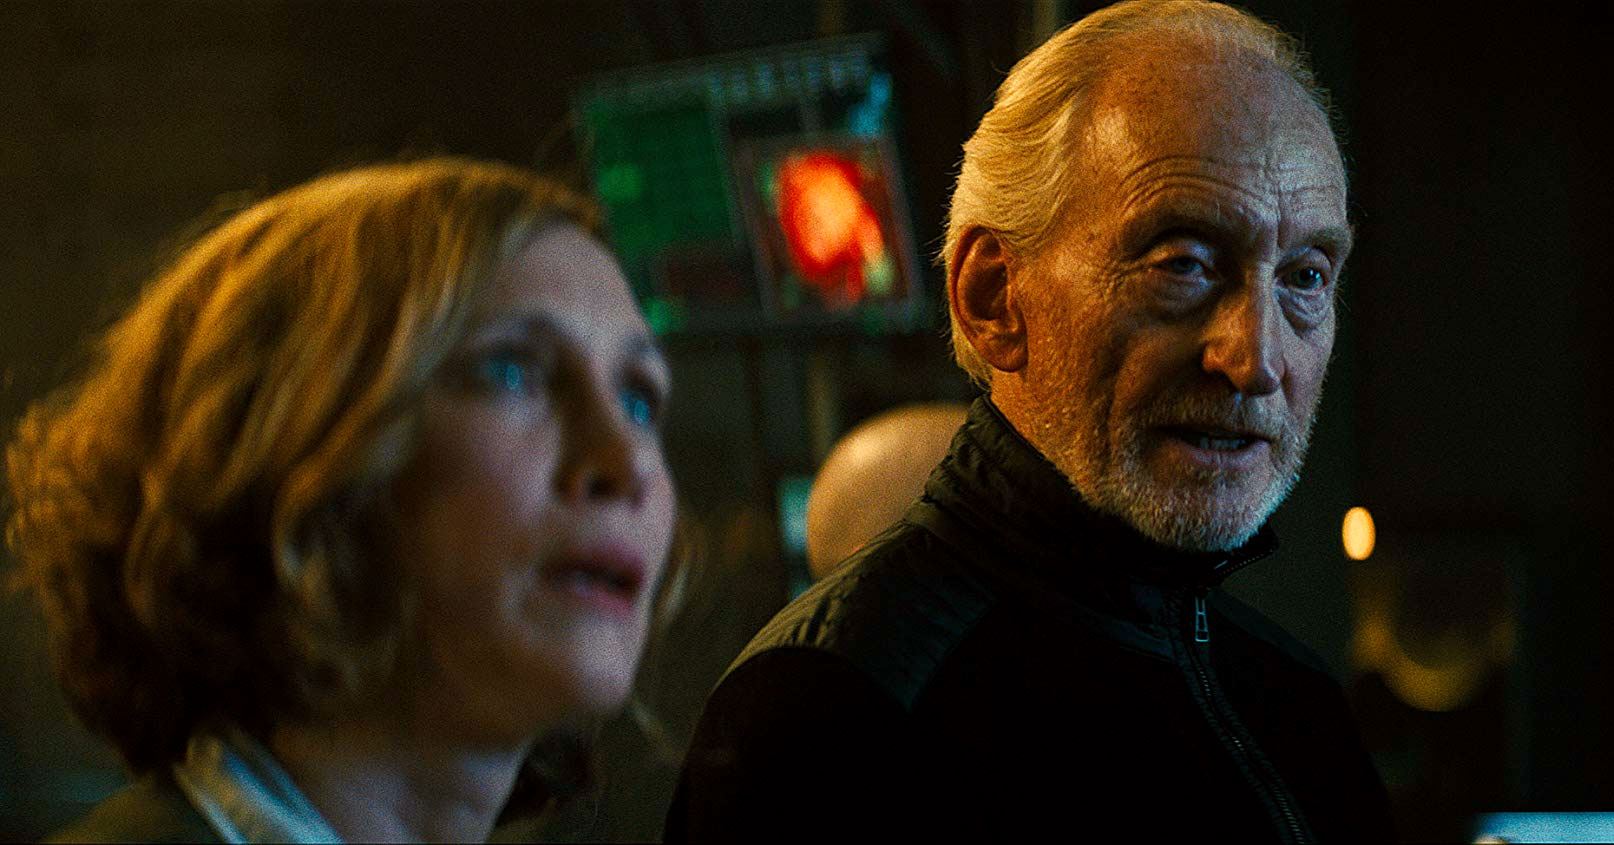 Godzilla: King of the Monsters - Vera Farmiga and Charles Dance